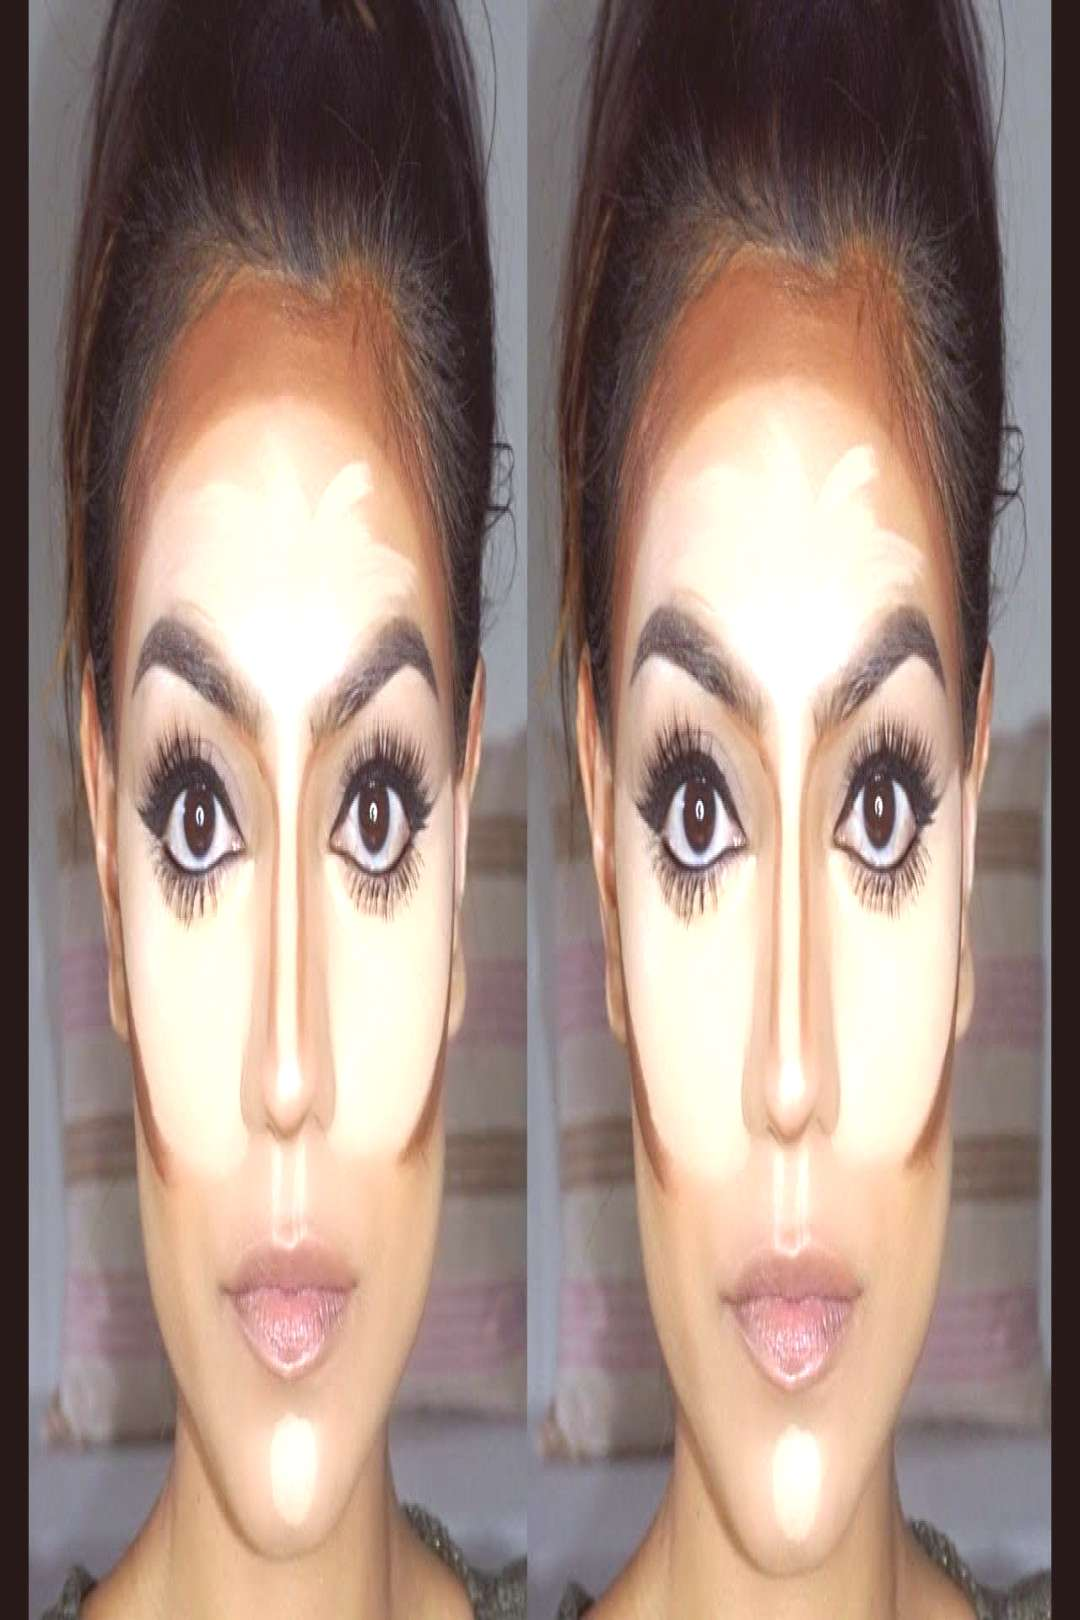 Best Of Extreme Contouring Makeup Tutorial And Pics ,  Best Of Extreme Contouring Makeup Tutorial A